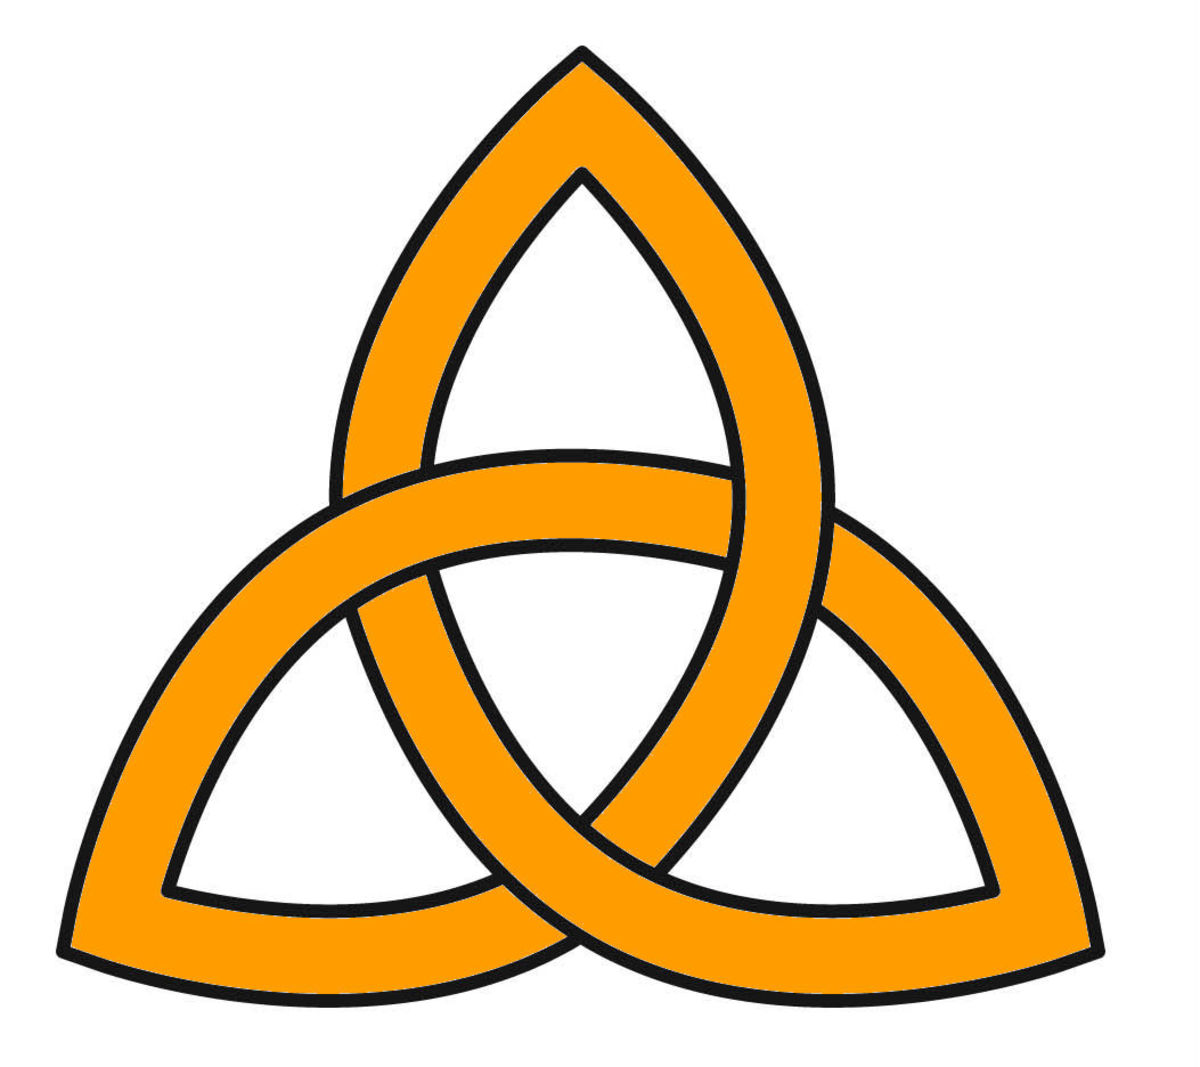 Traditional symbol for the Holy Trinity